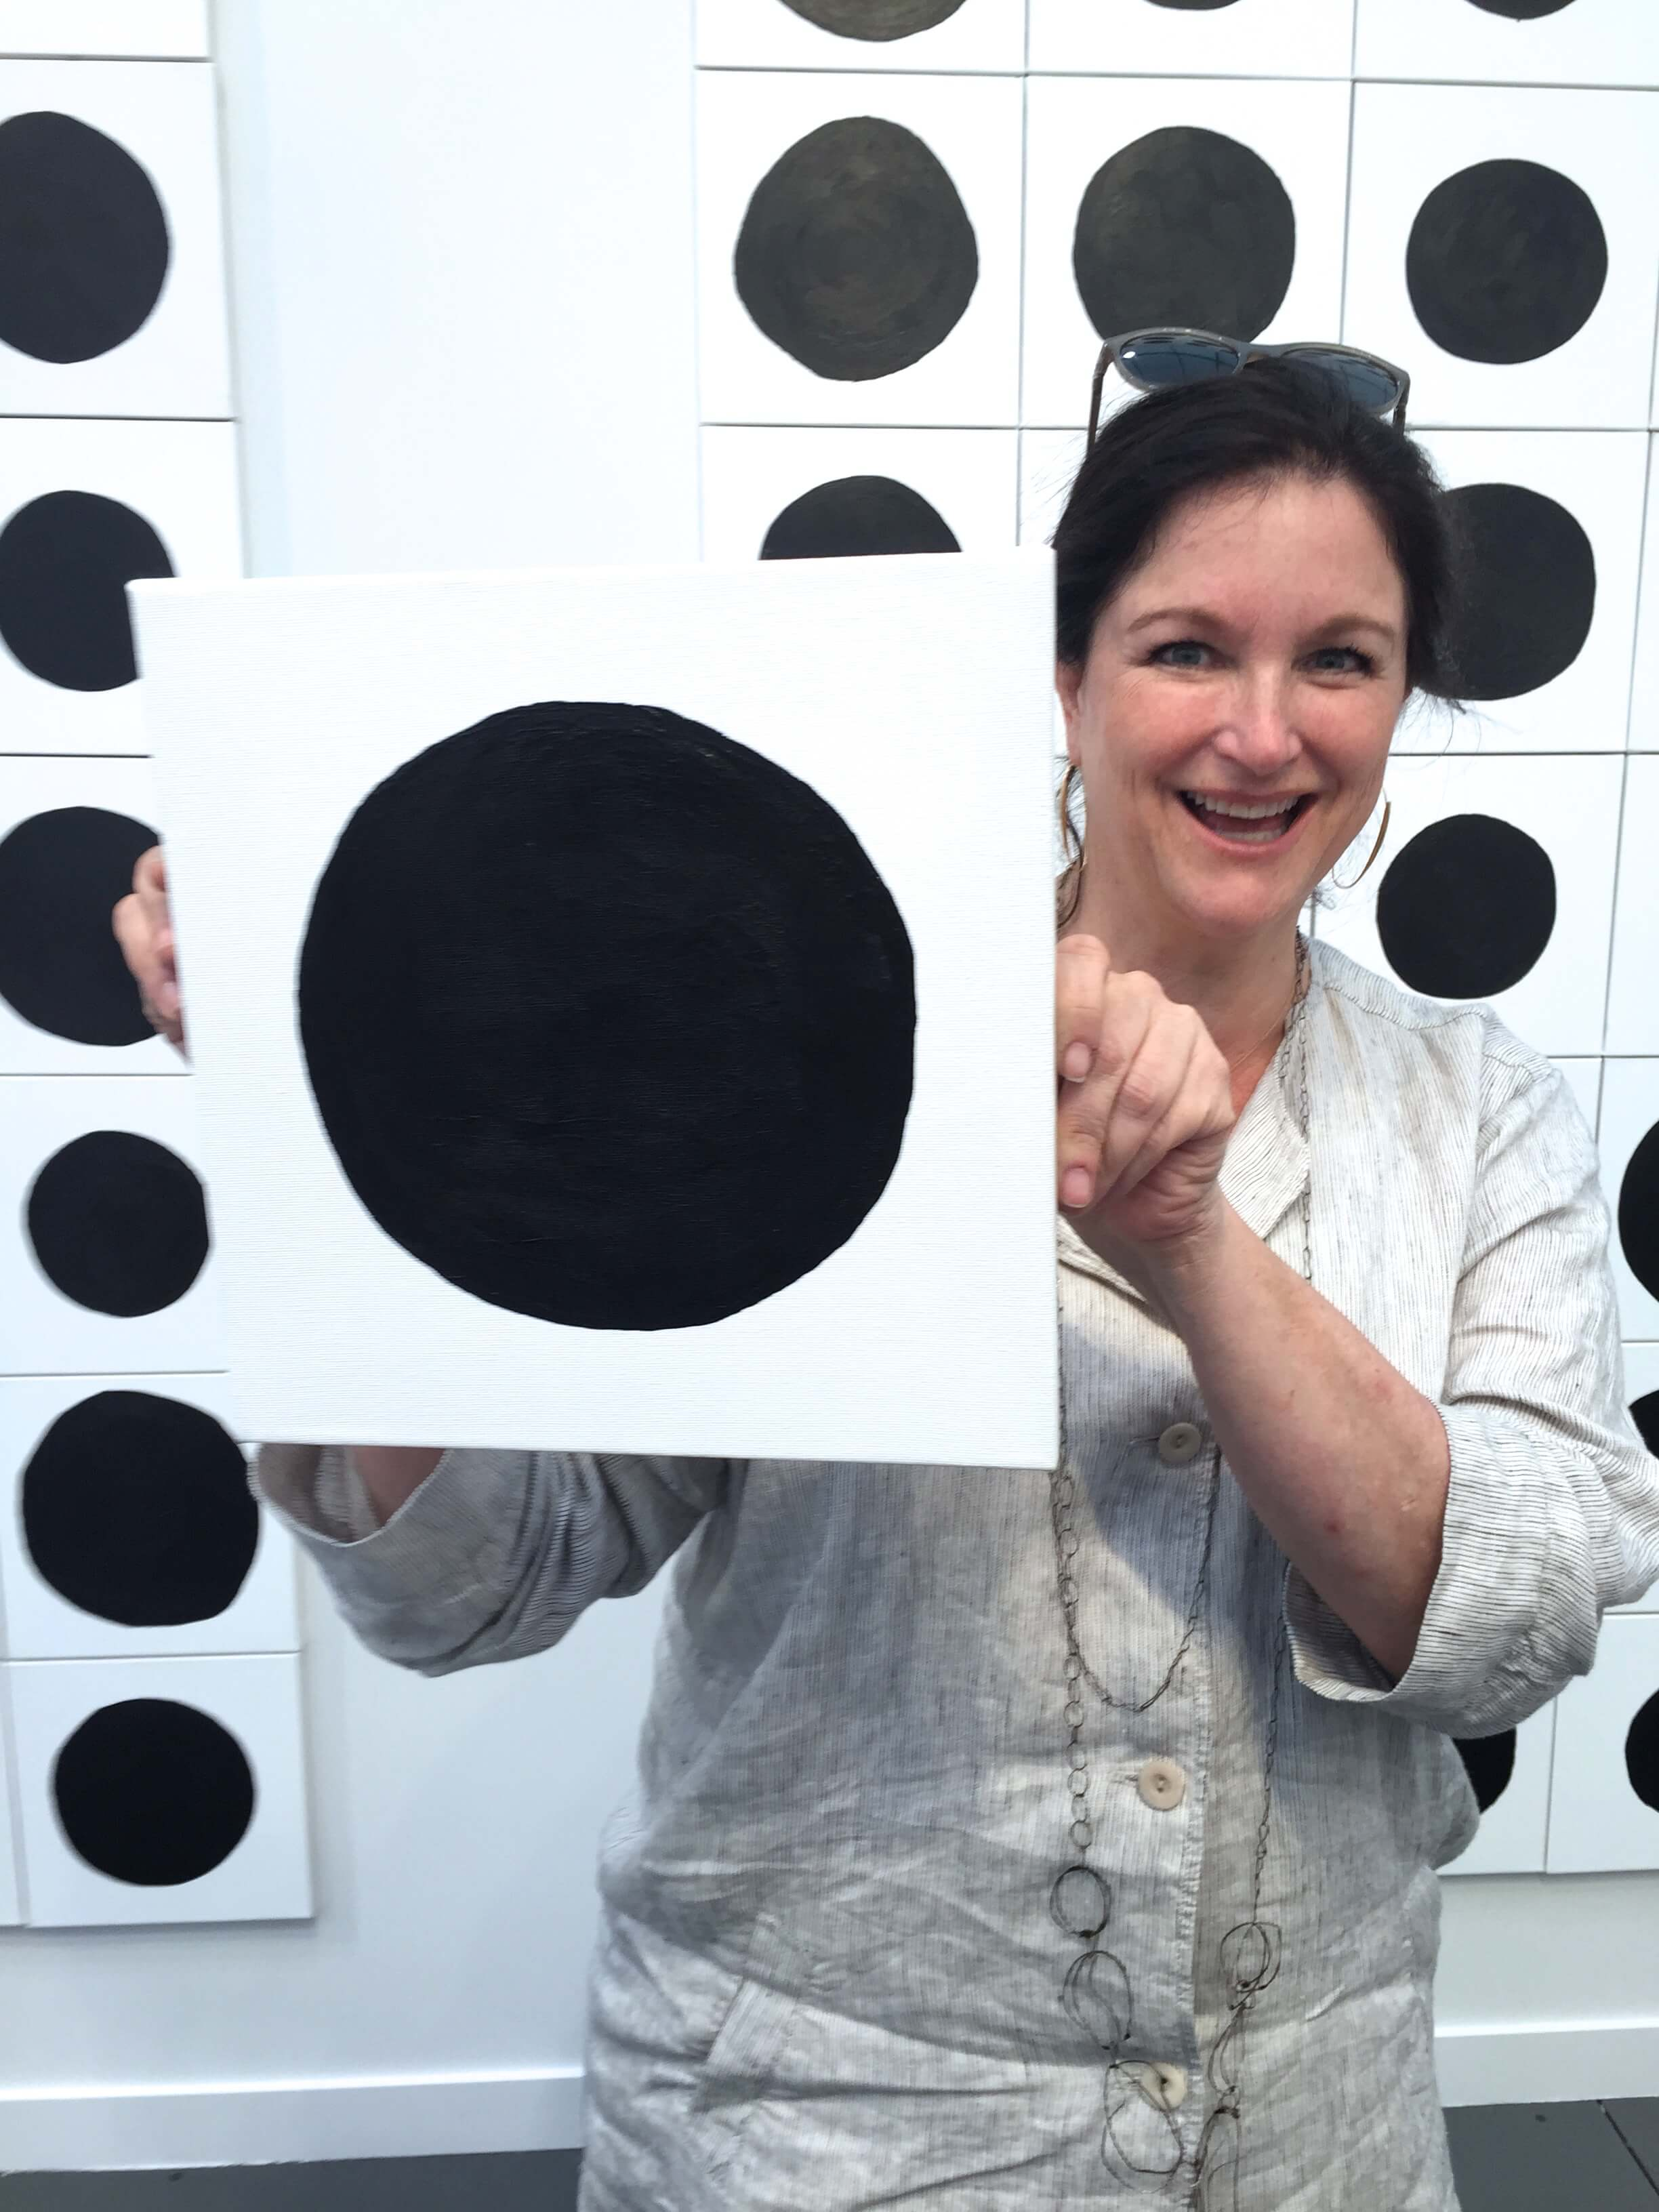 Lea Weingarten, principal of Weingarten Art Group, participates in Jonathan Horowitz's interactive installation as part of Frieze Art Fair New York 2015.